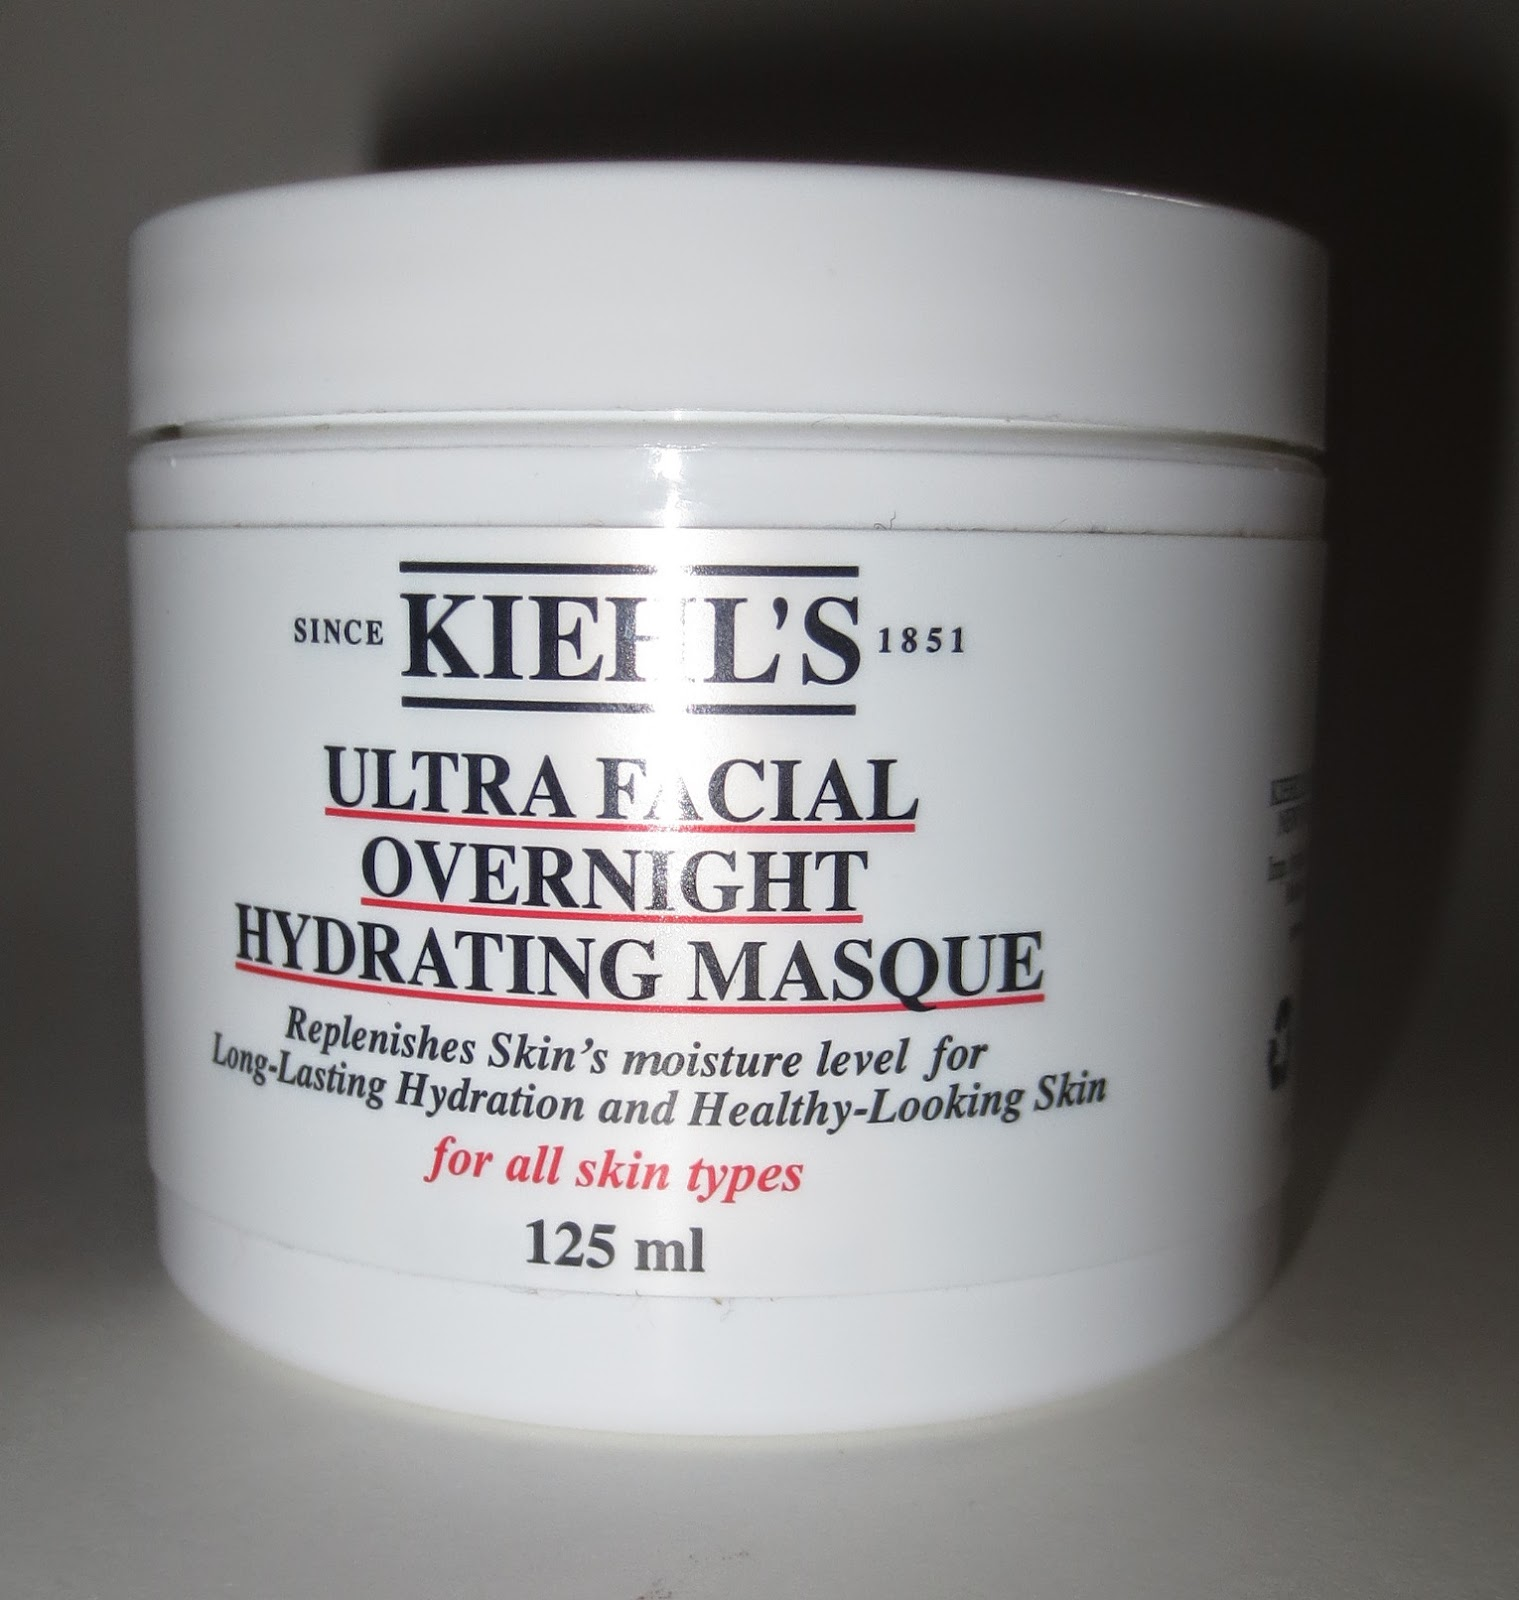 Kiehl's Ultra Facial Overnight Hydrating Masque Packaging